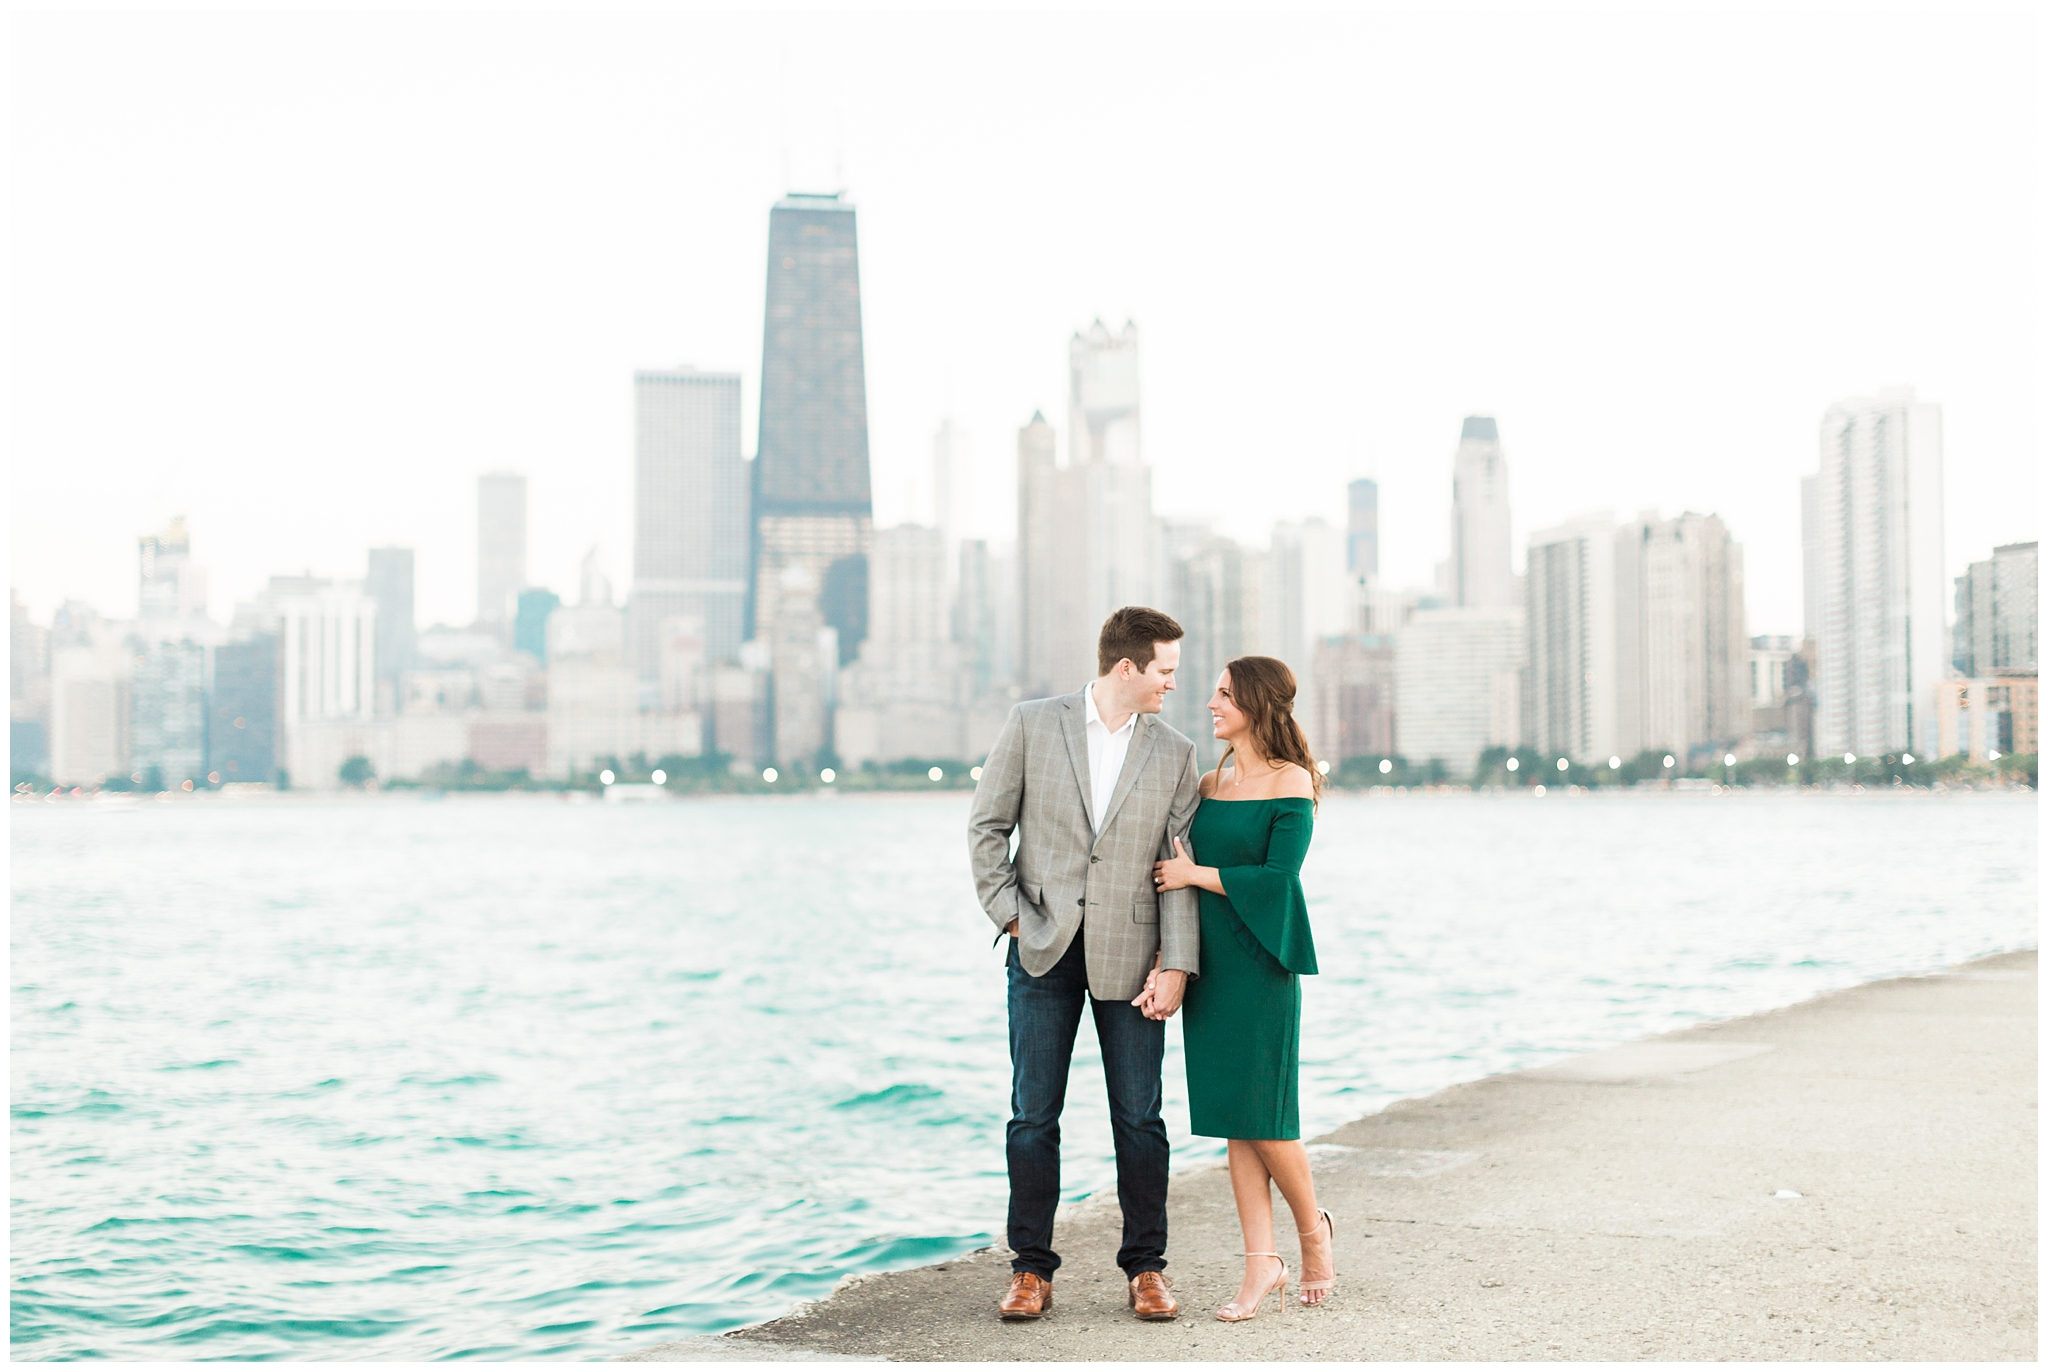 chicagoengagementsession_northavebeachengagementsession_northavebeach_northavenuebeach_northavenuebeachengagementsession_chicagoriverwalk_chicagoriverwalkengagementsession_0016.jpg